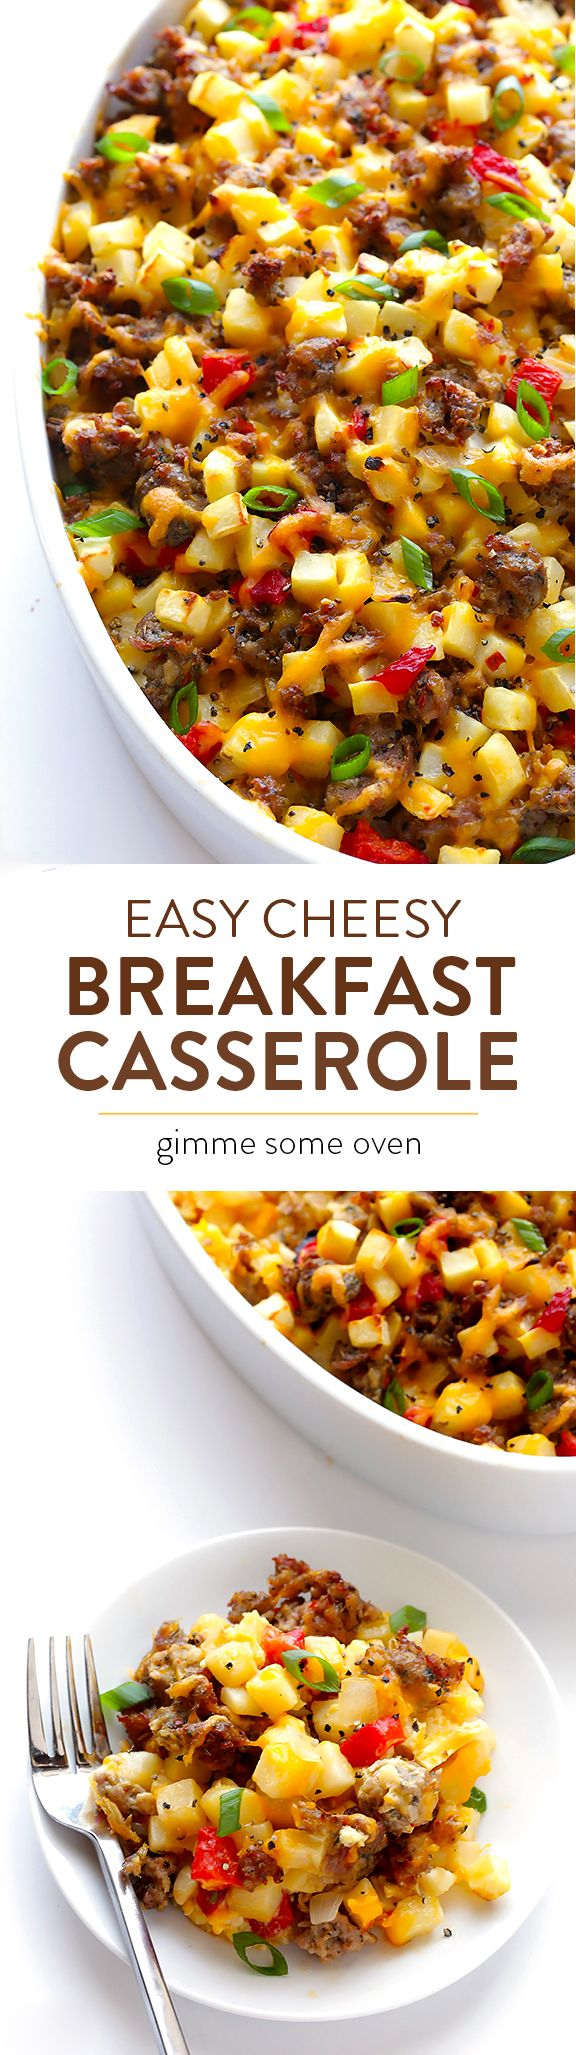 Easy Cheesy Breakfast Casserole | Gimme Some Oven